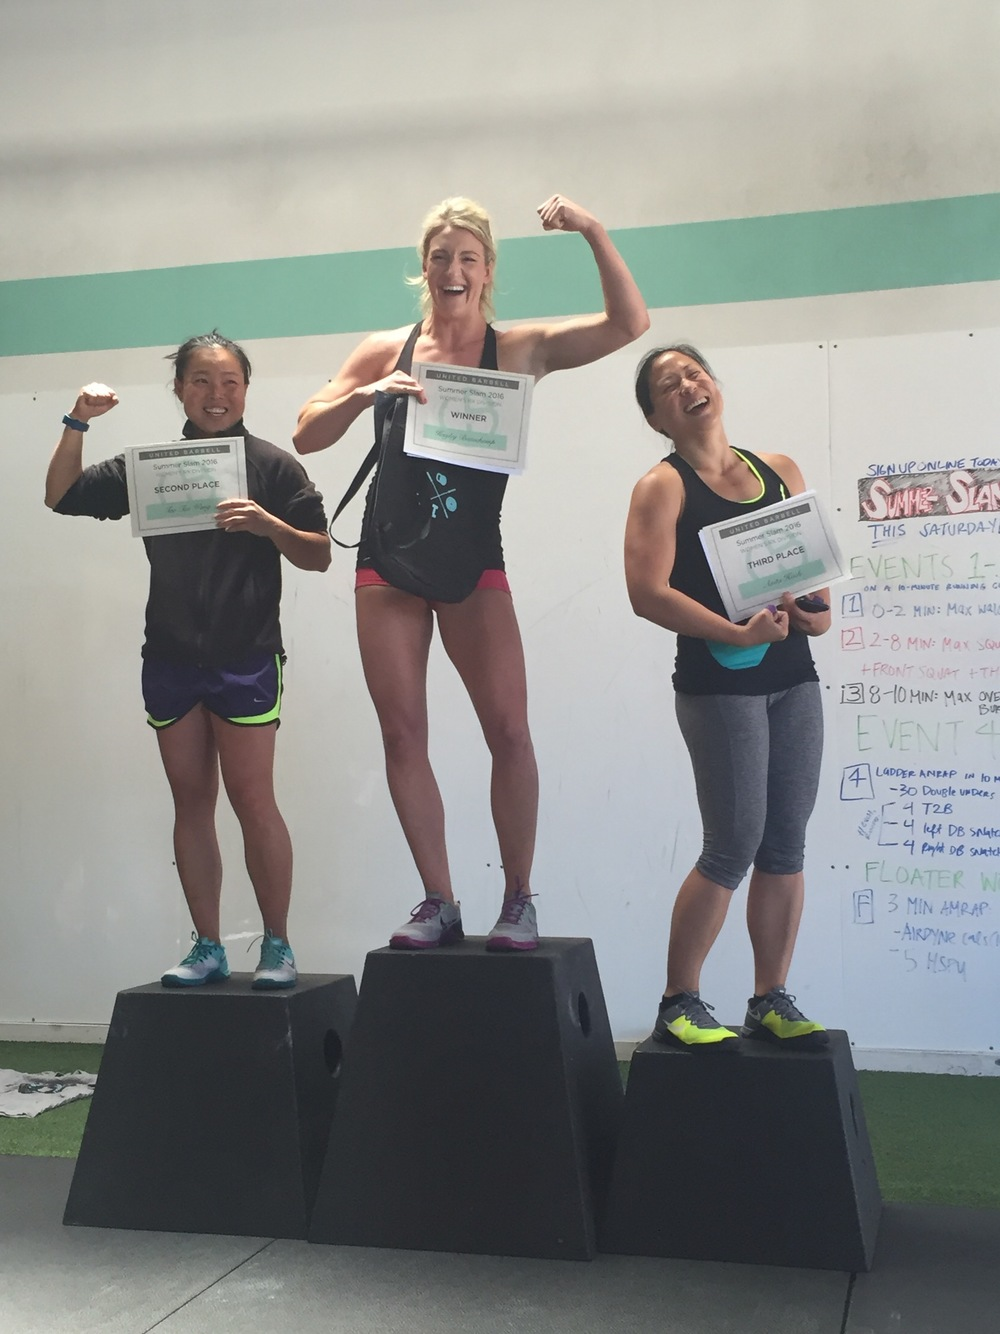 RX Ladies: 1st - Hayley, 2nd - Tao Tao, 3rd - Anita